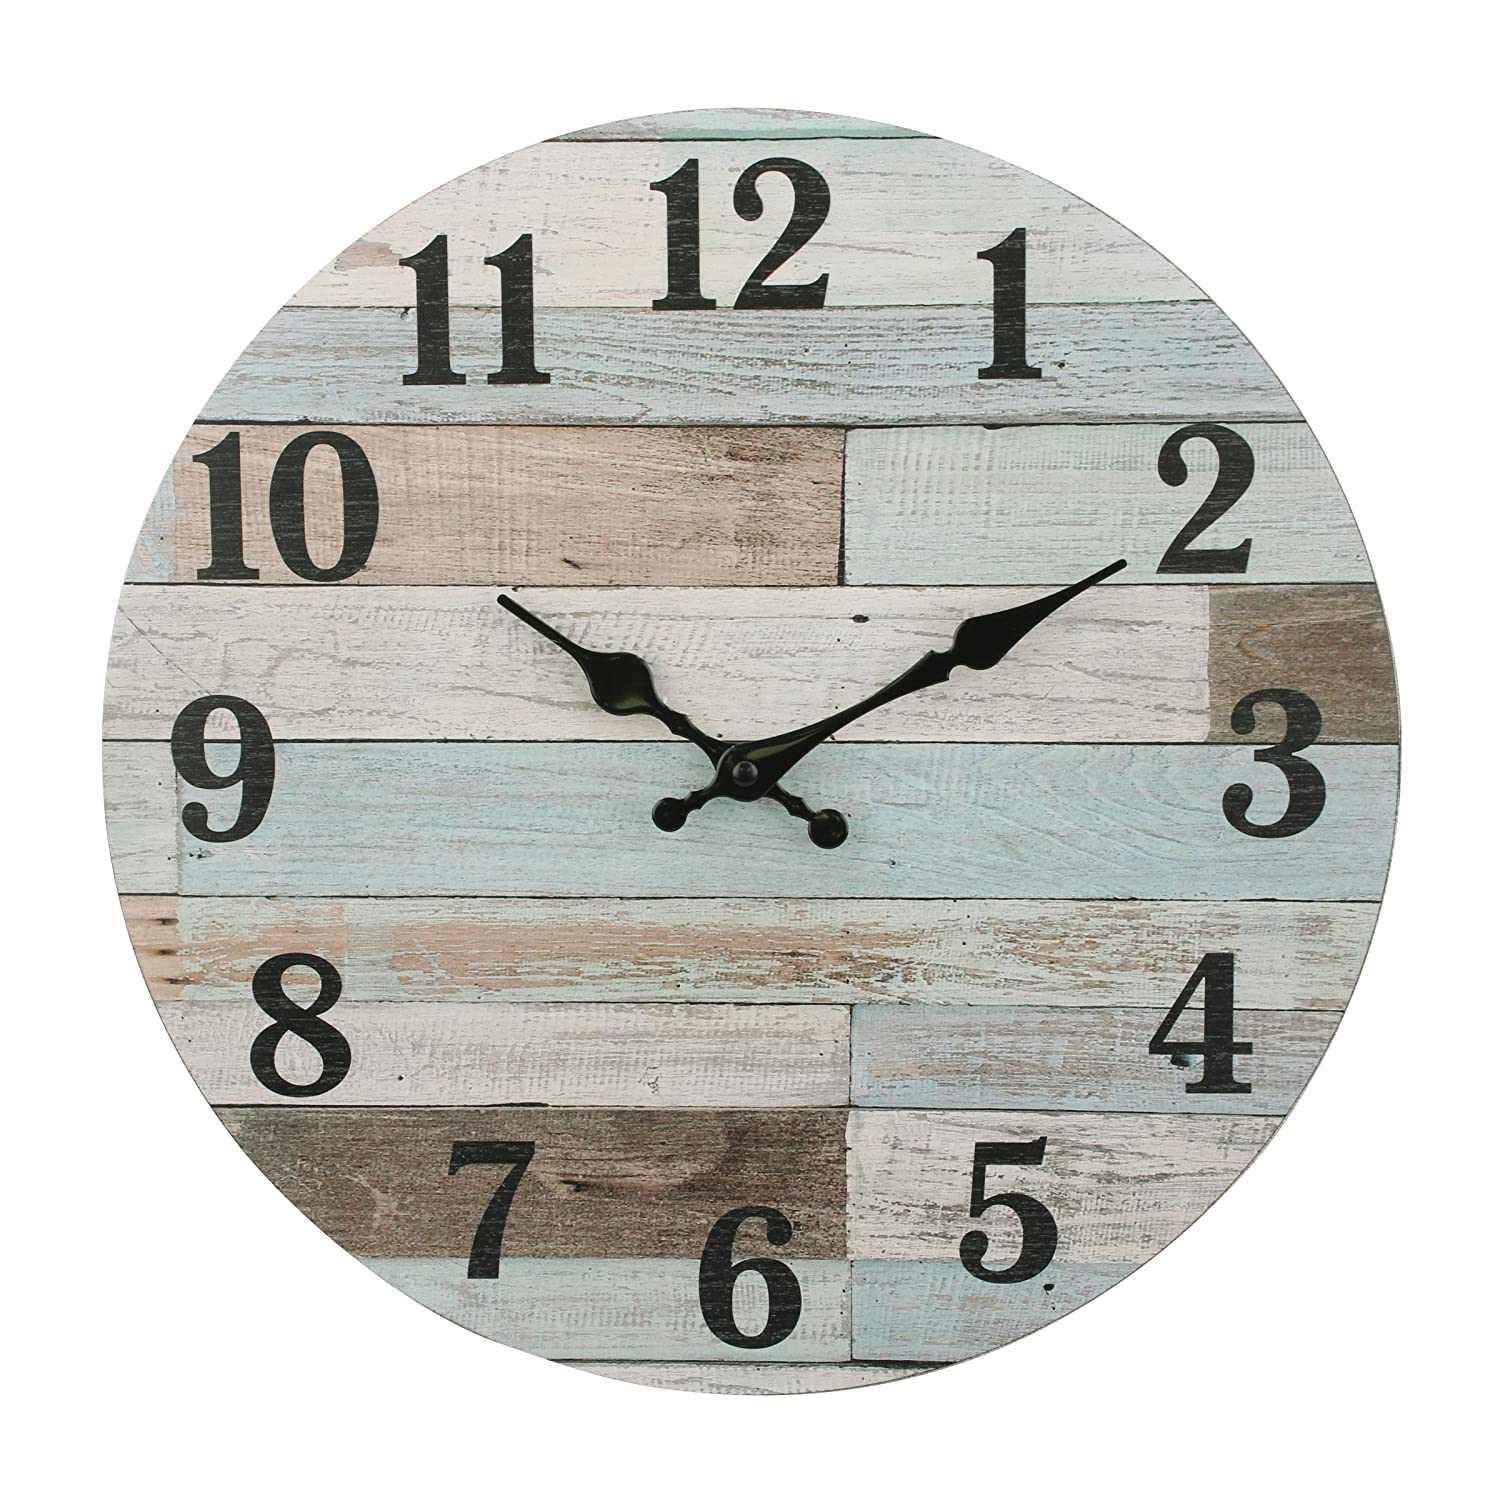 Stonebriar Vintage Coastal Worn Blue 14 Inch Round Hanging Wall Clock, Battery Operated, Rustic Wall Decor for the Living Room, Kitchen, Bedroom, and Patio